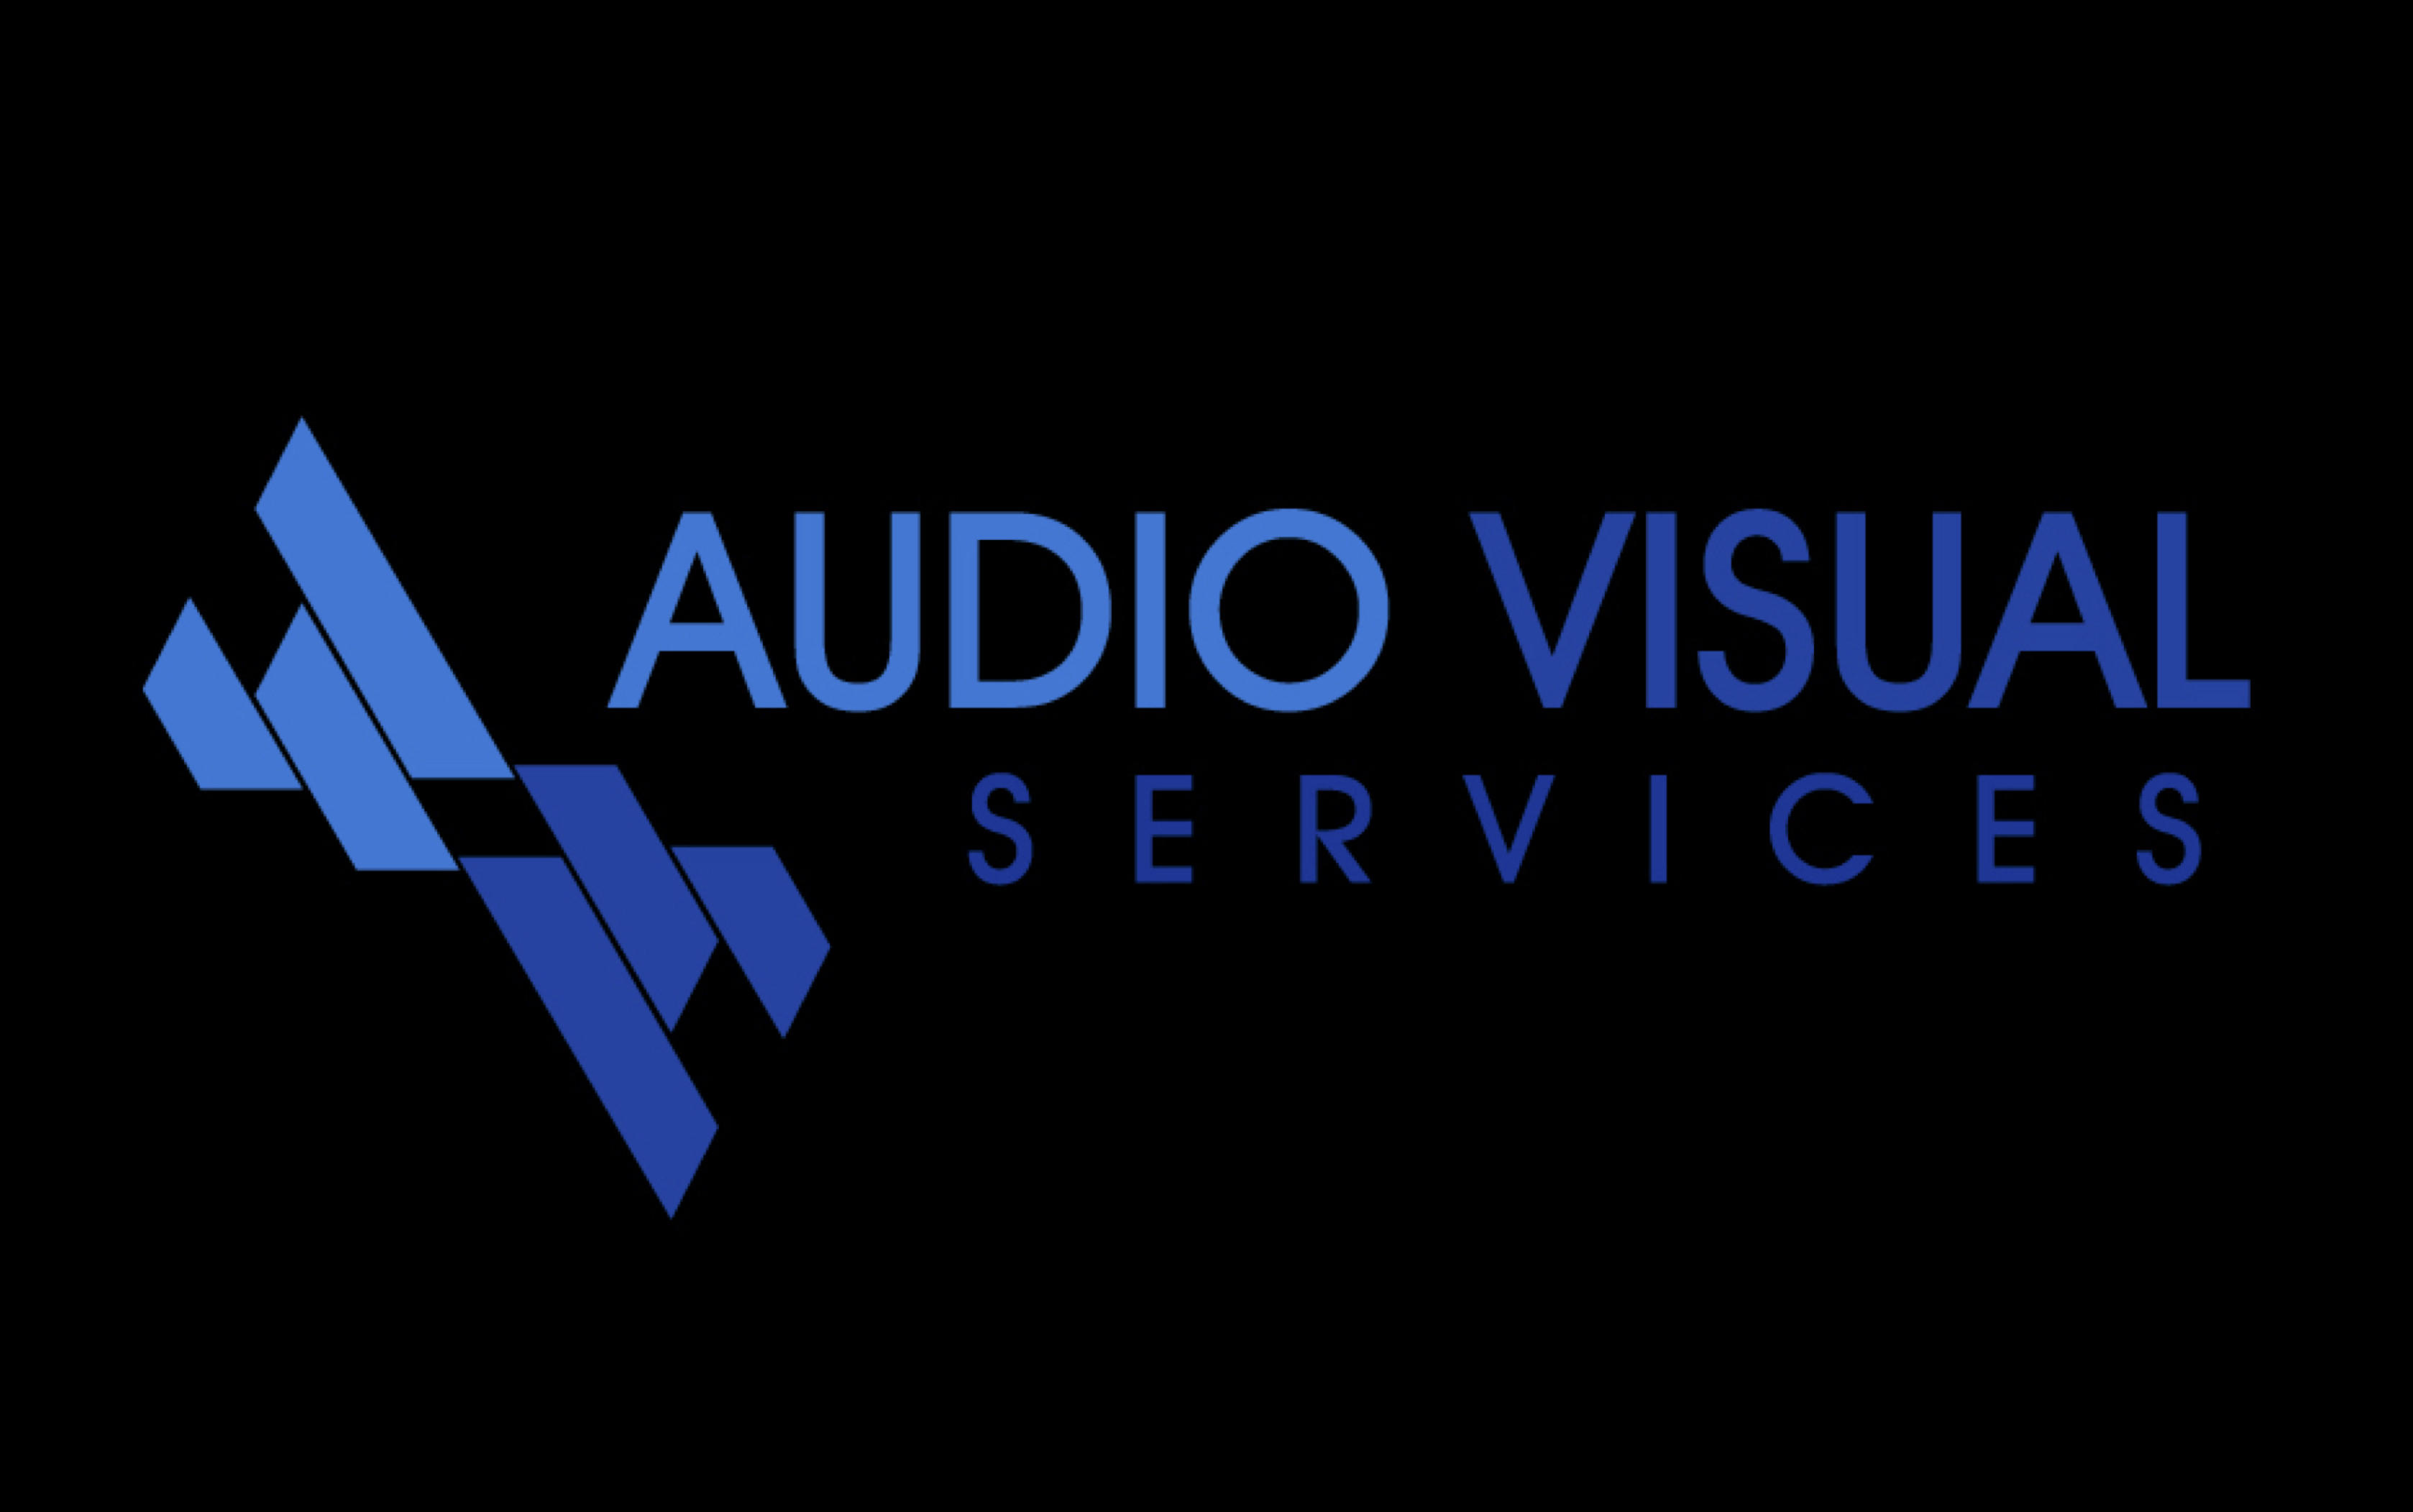 Avs Audio Visual Services View Larger Image